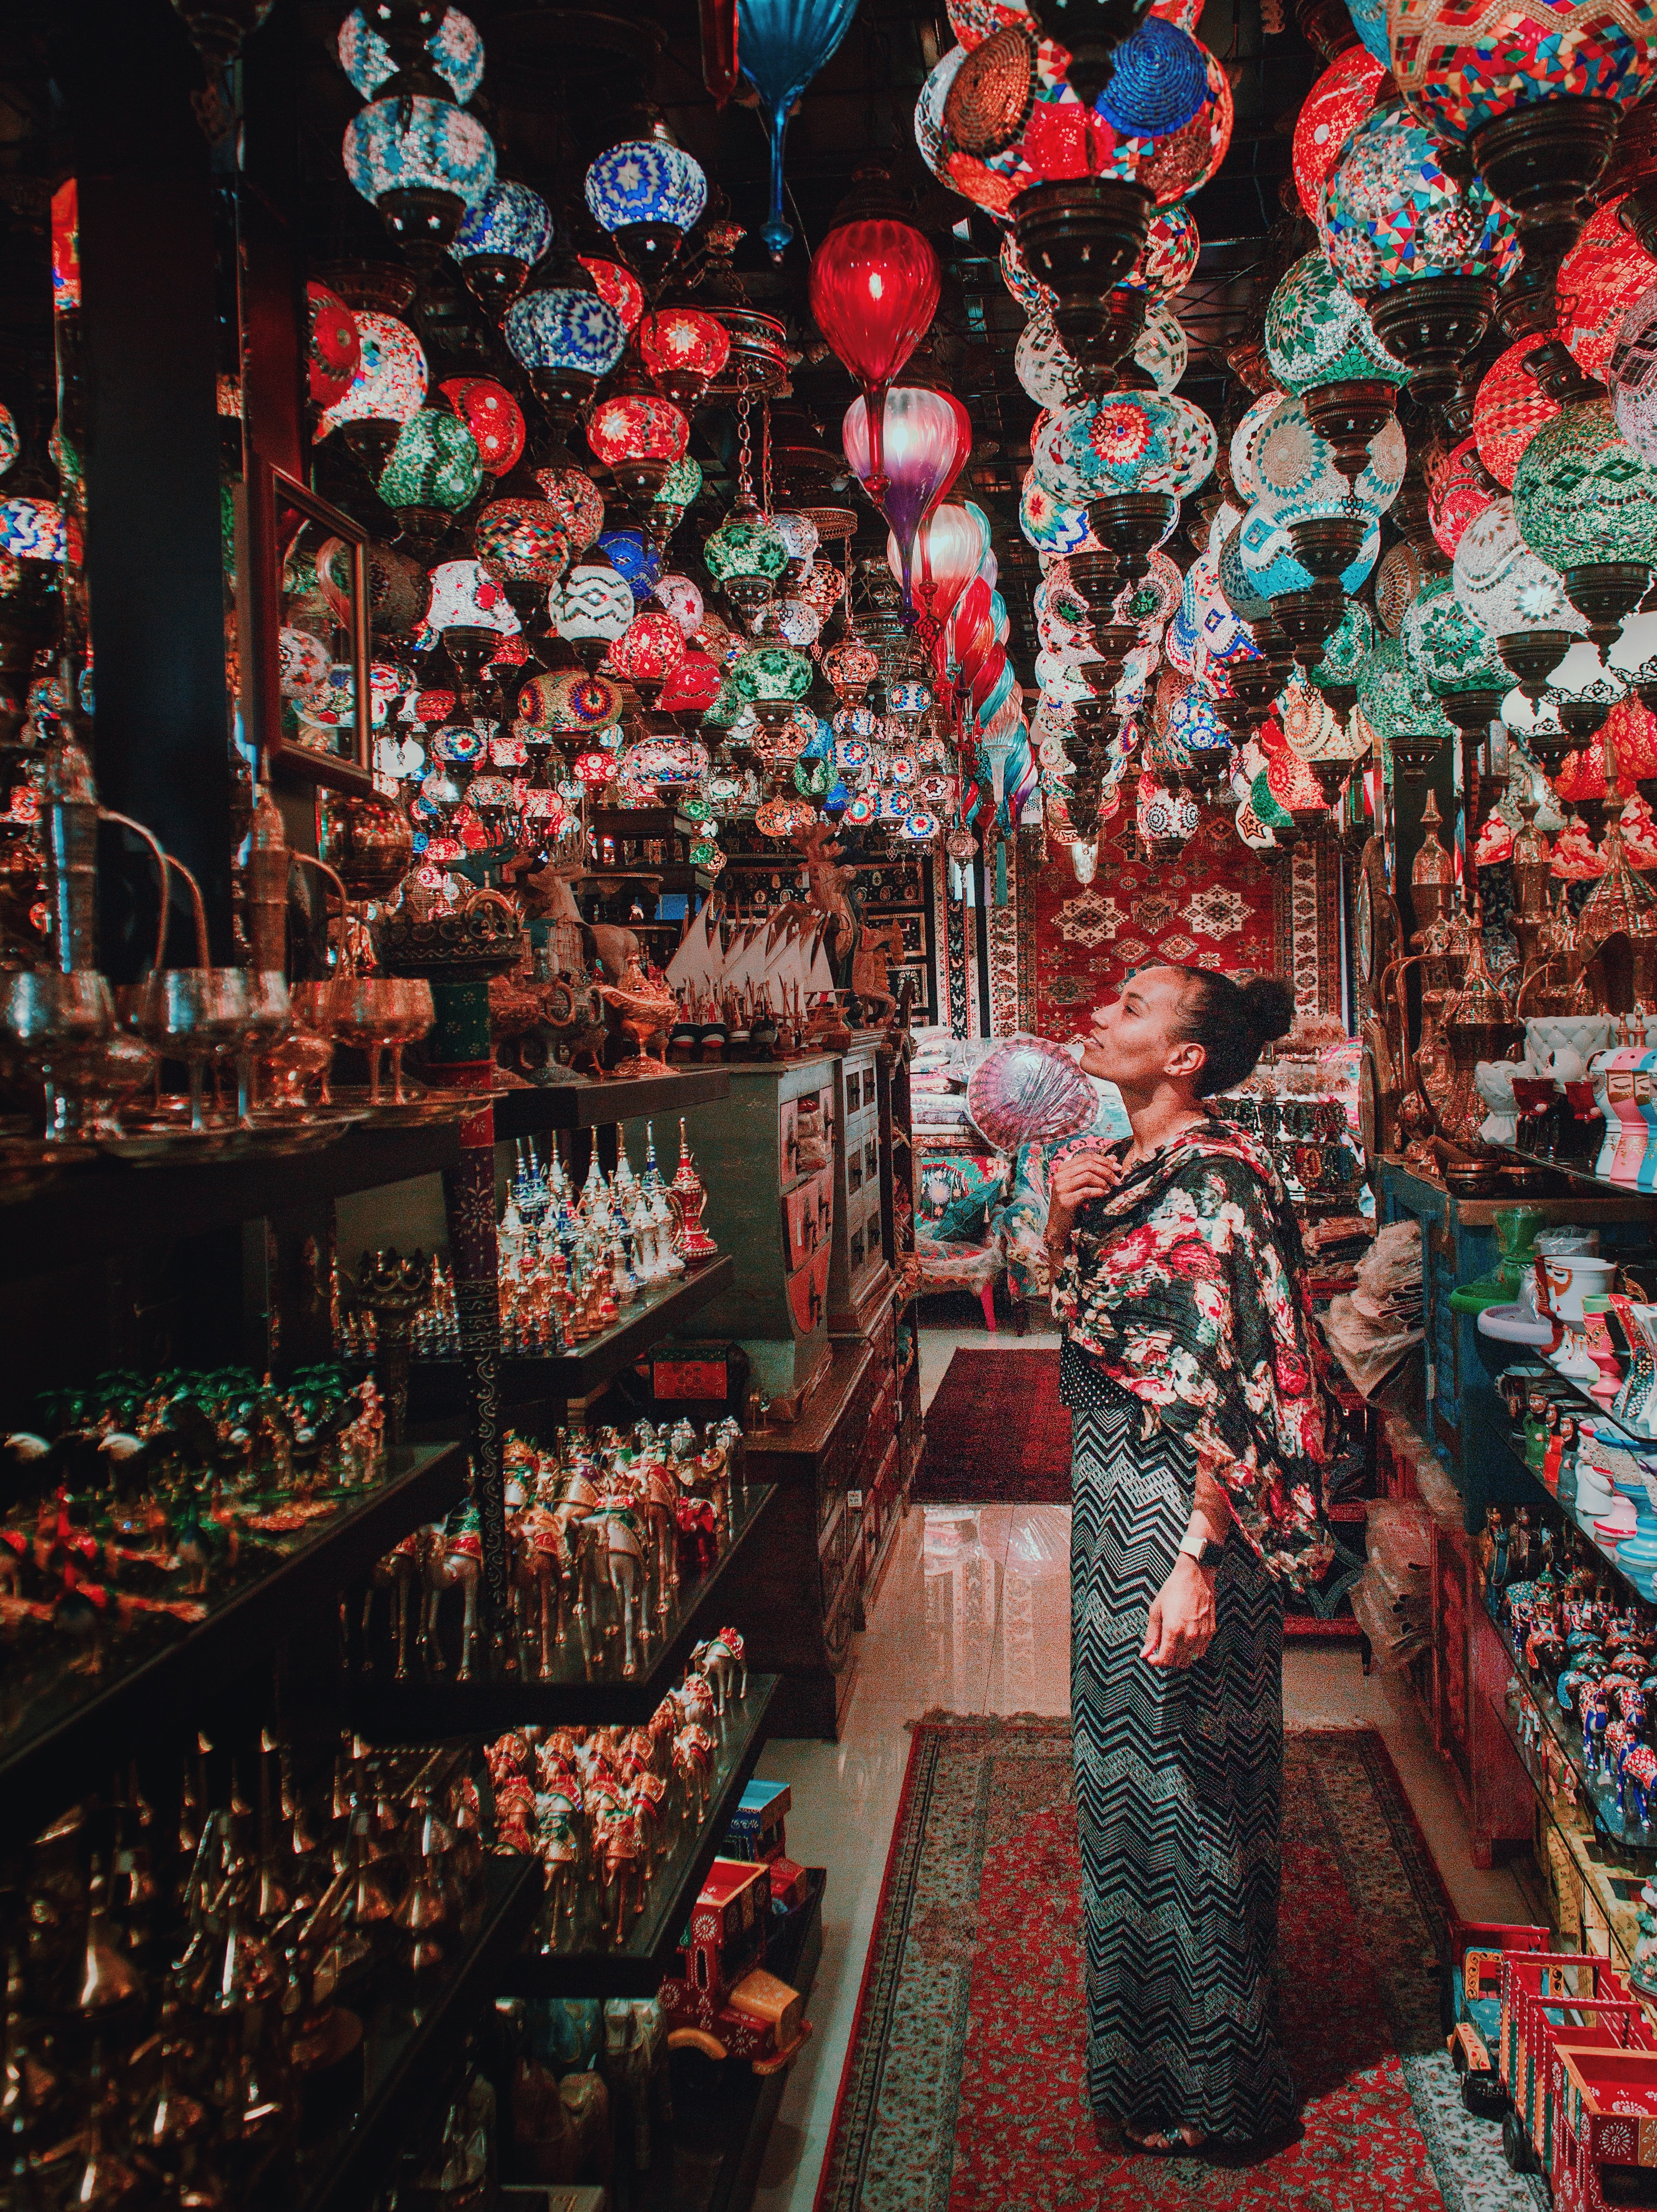 Illustrated by Sade - Arabic, Persian, Middle-eastern lanterns hanging inside a souq shop